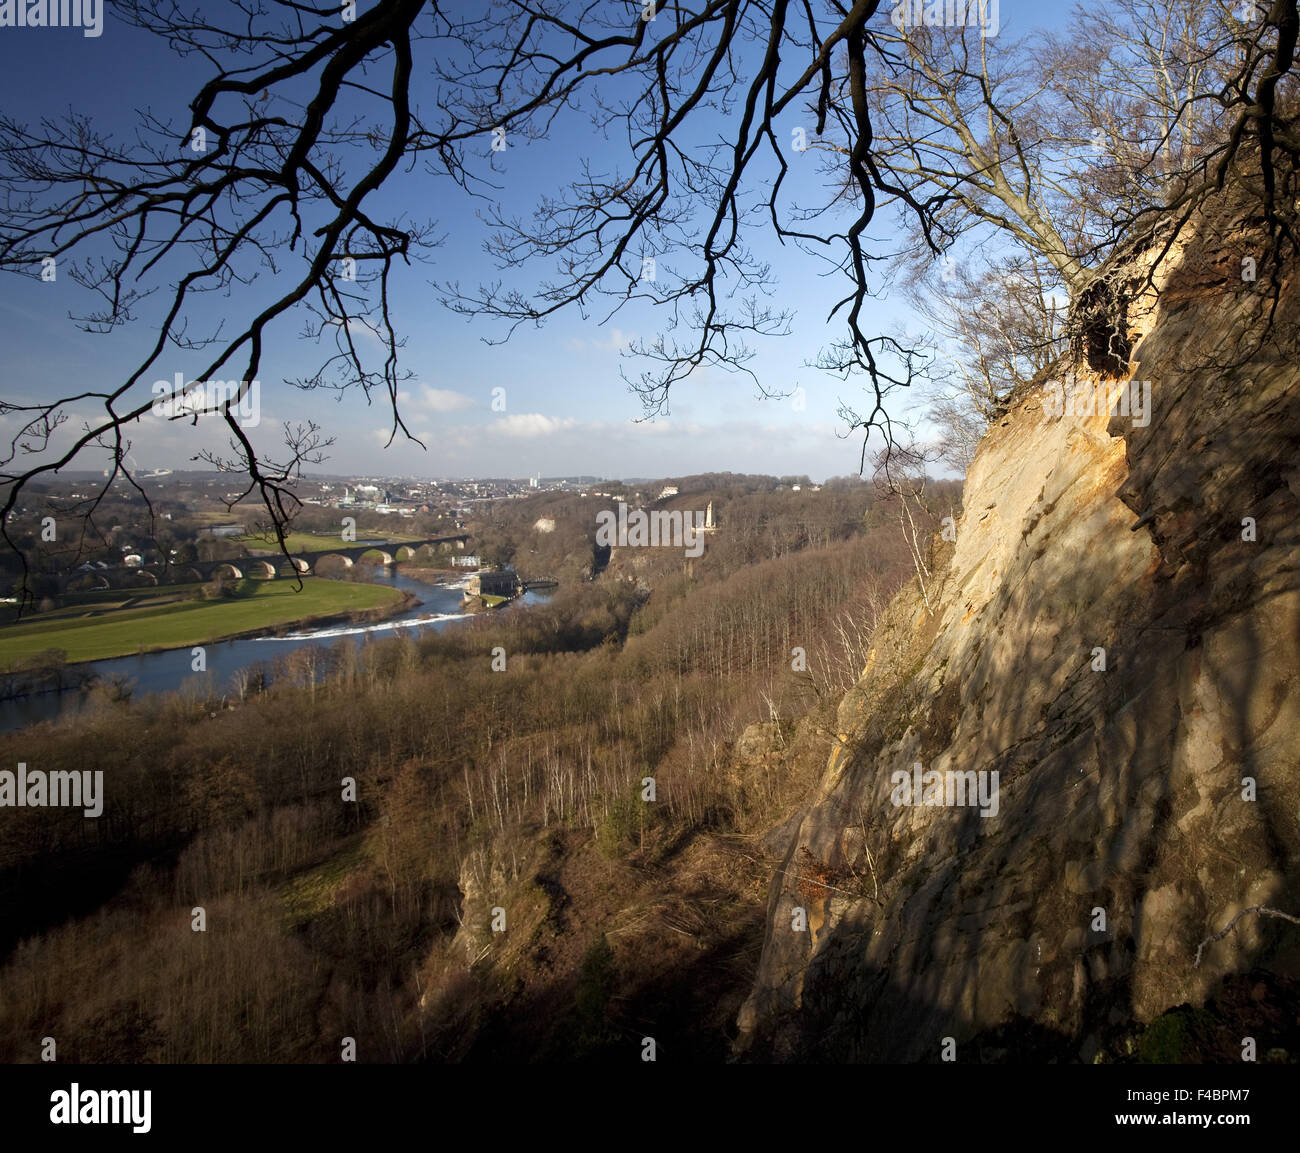 Ruhr Valley in winter, Germany - Stock Image